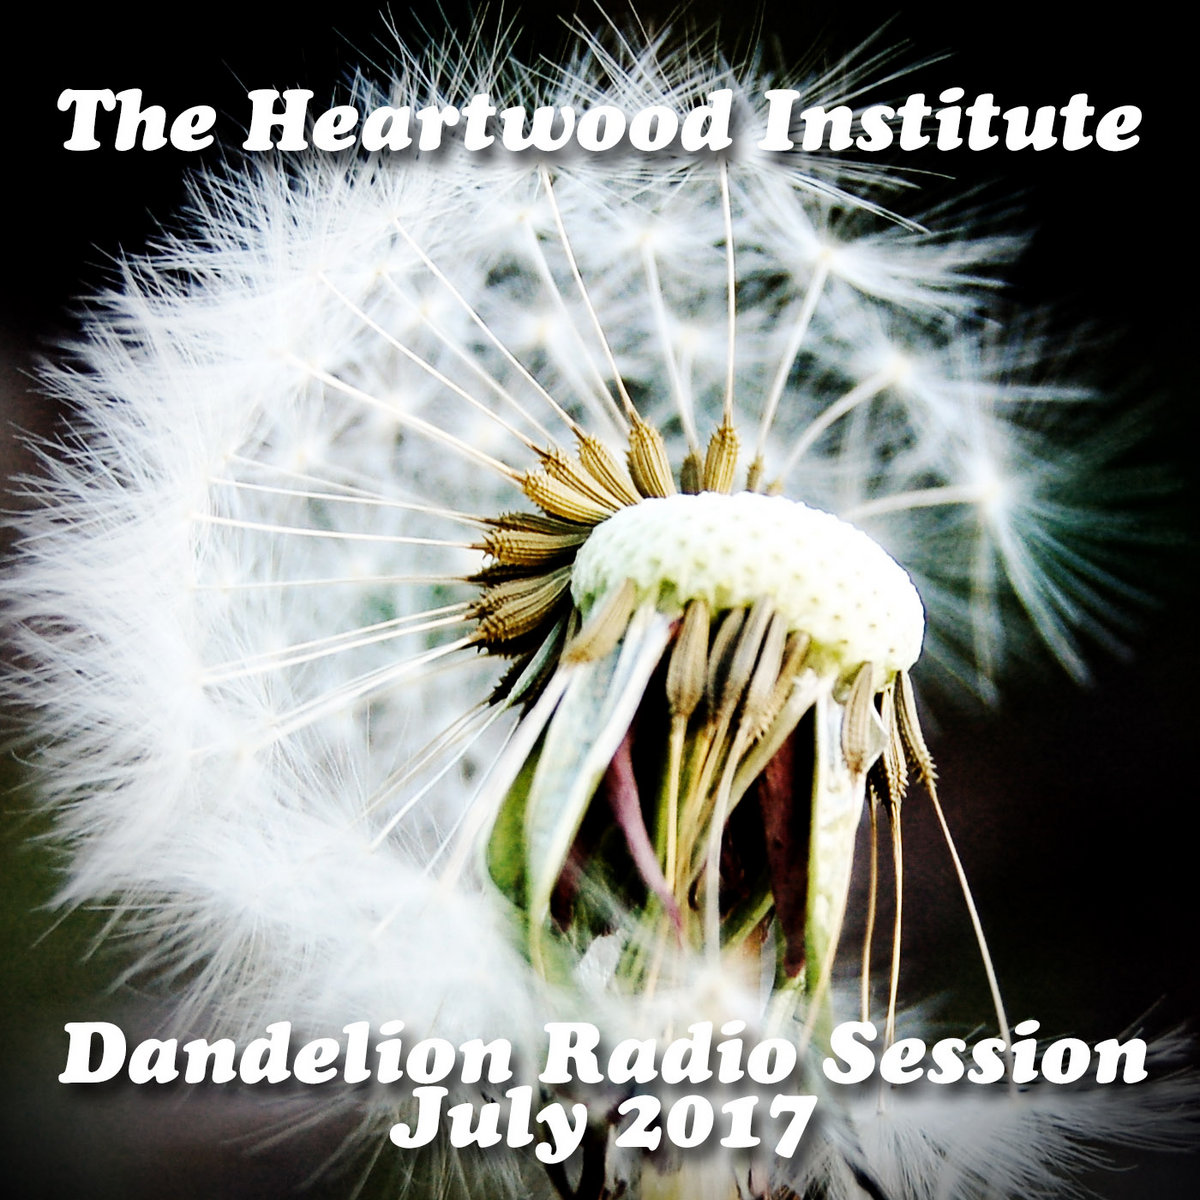 By The Heartwood Institute